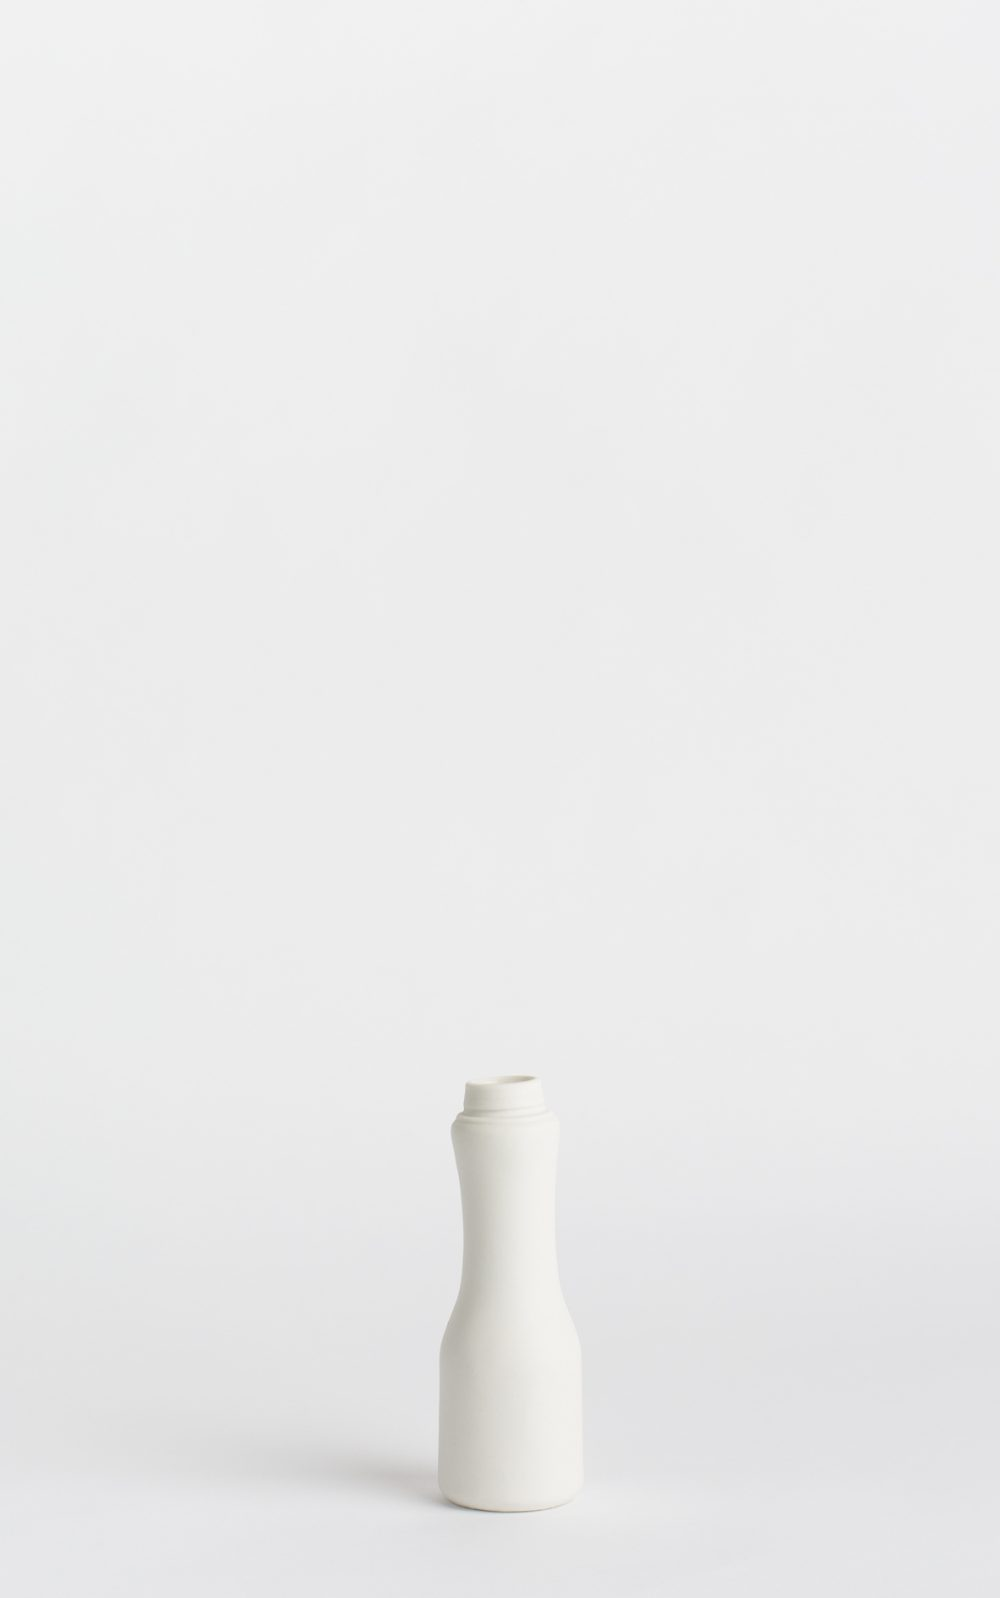 bottle vase #6 white